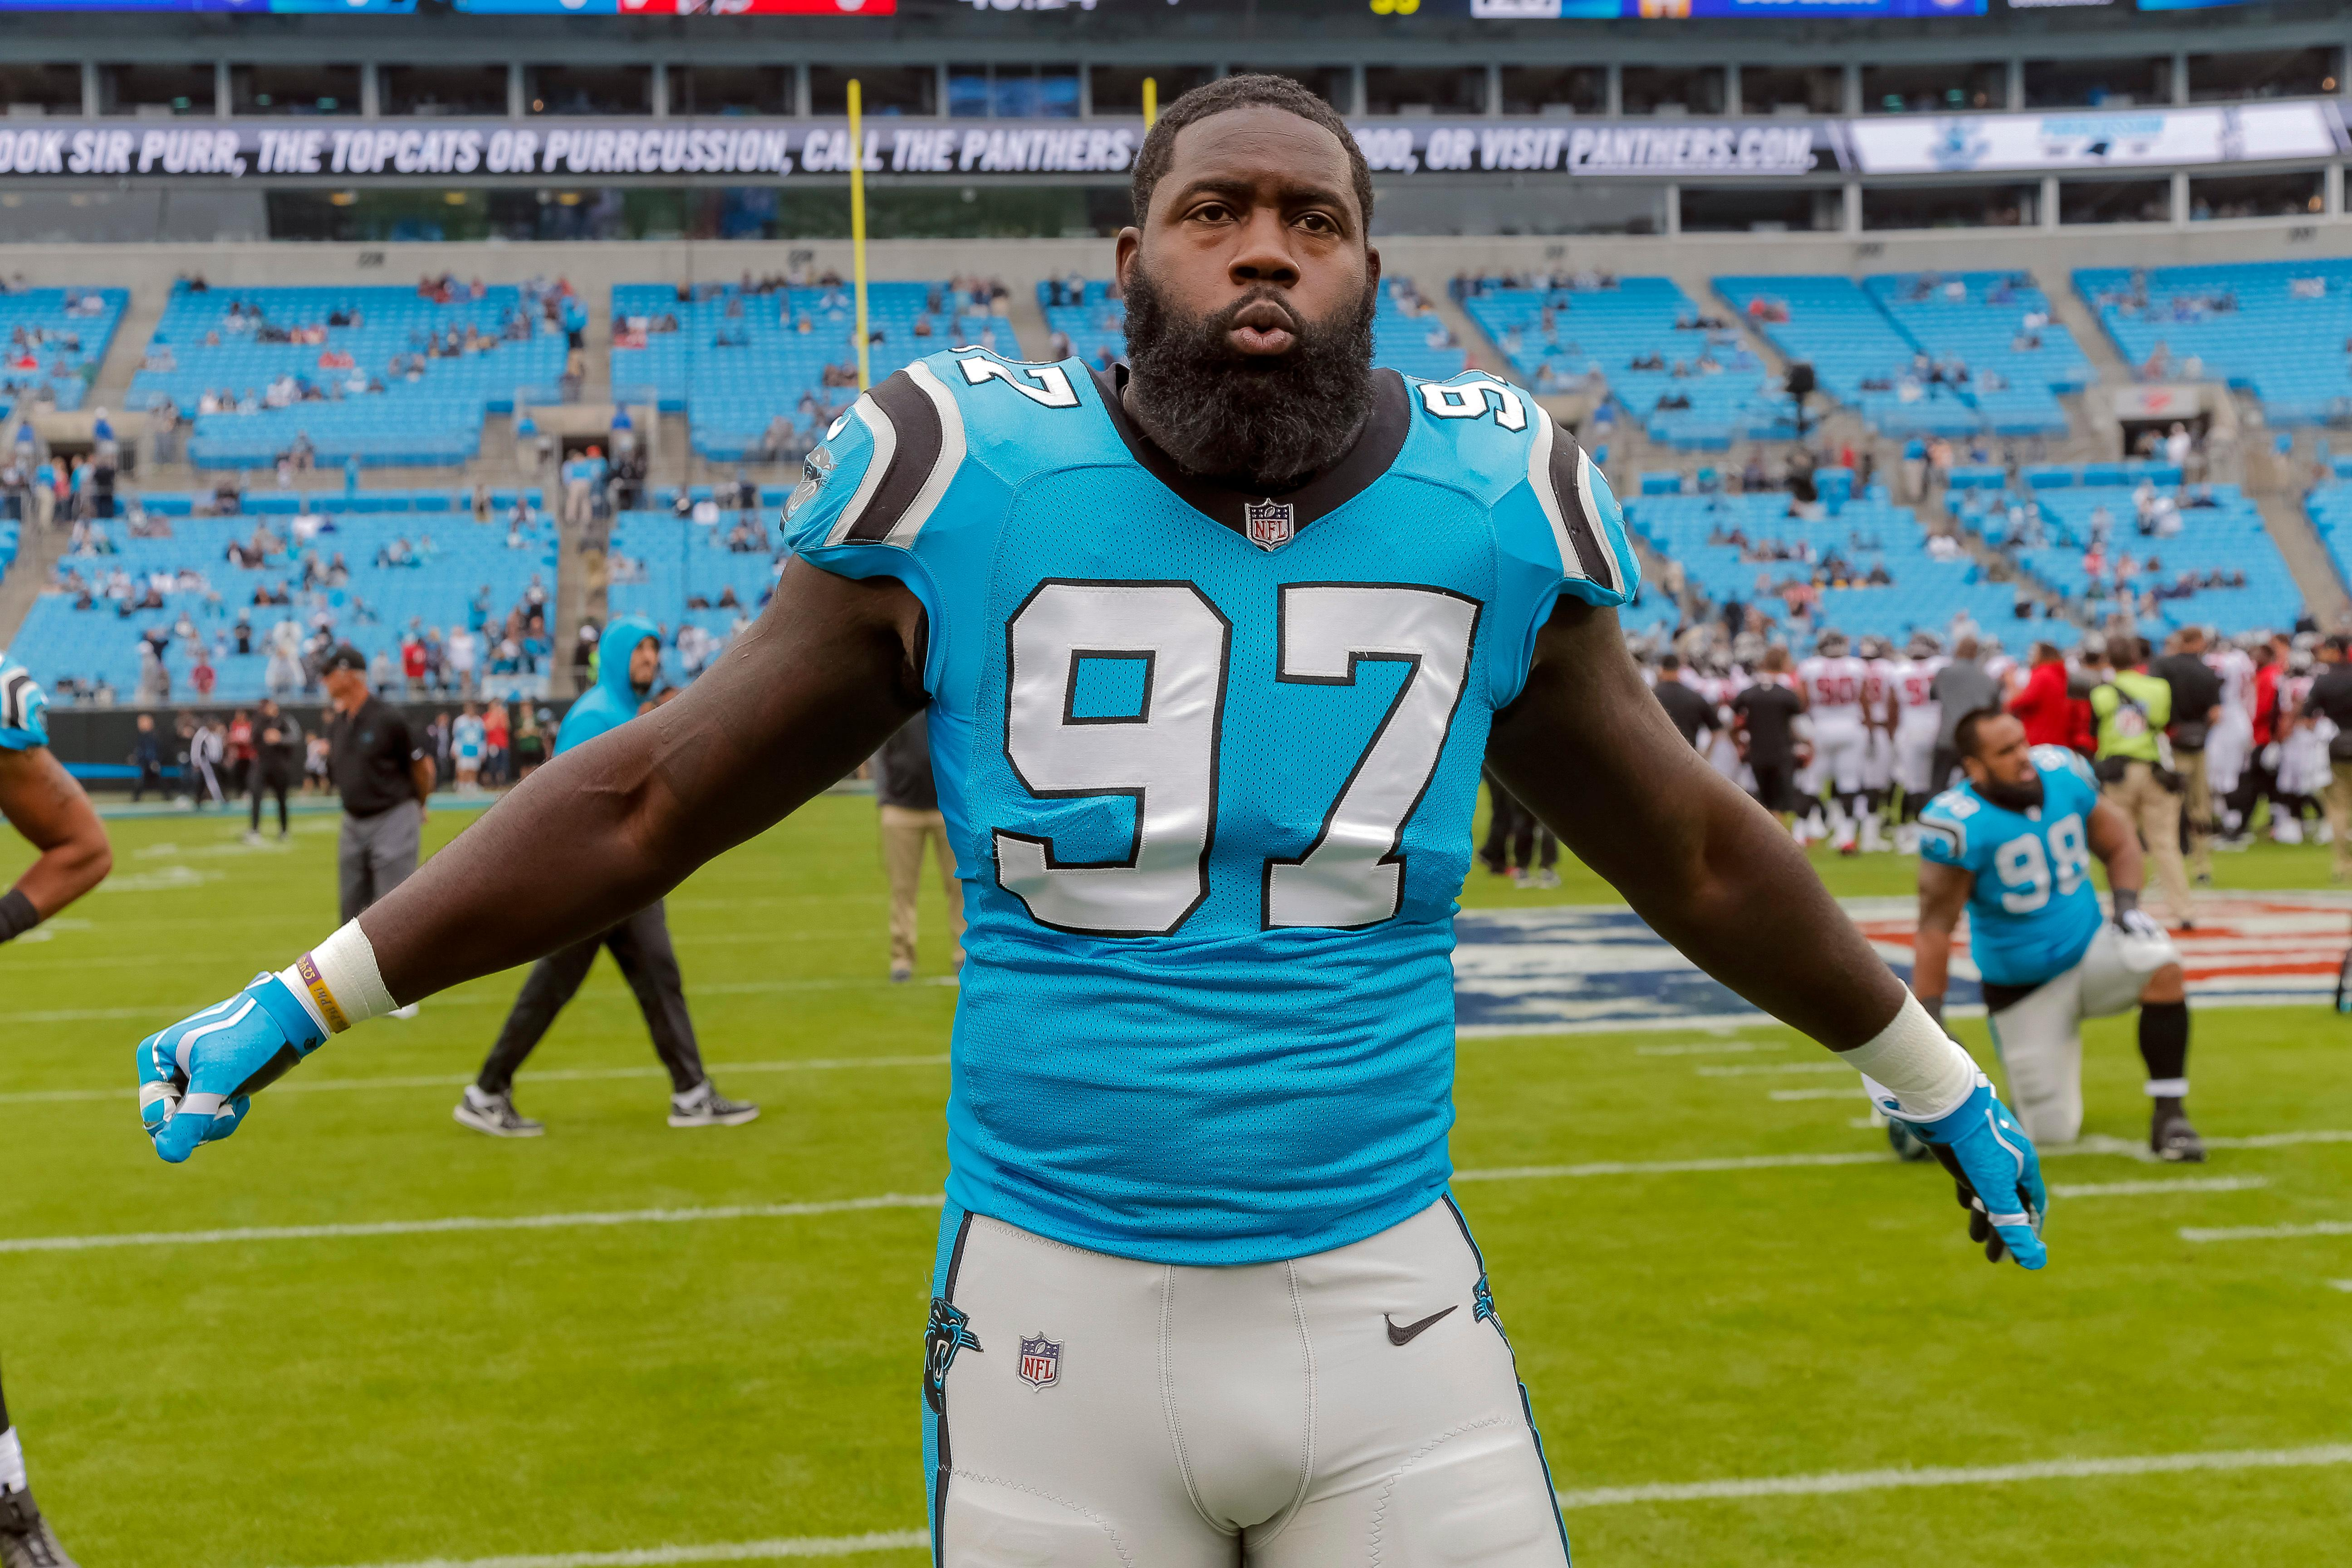 FILE - In this Nov. 5, 2017, file photo, Carolina Panthers' Mario Addison (97) warms up before an NFL football game against the Atlanta Falcons in Charlotte, N.C. The Panthers face the Steelers on Thursday in Pittsburgh. (AP Photo/Bob Leverone)